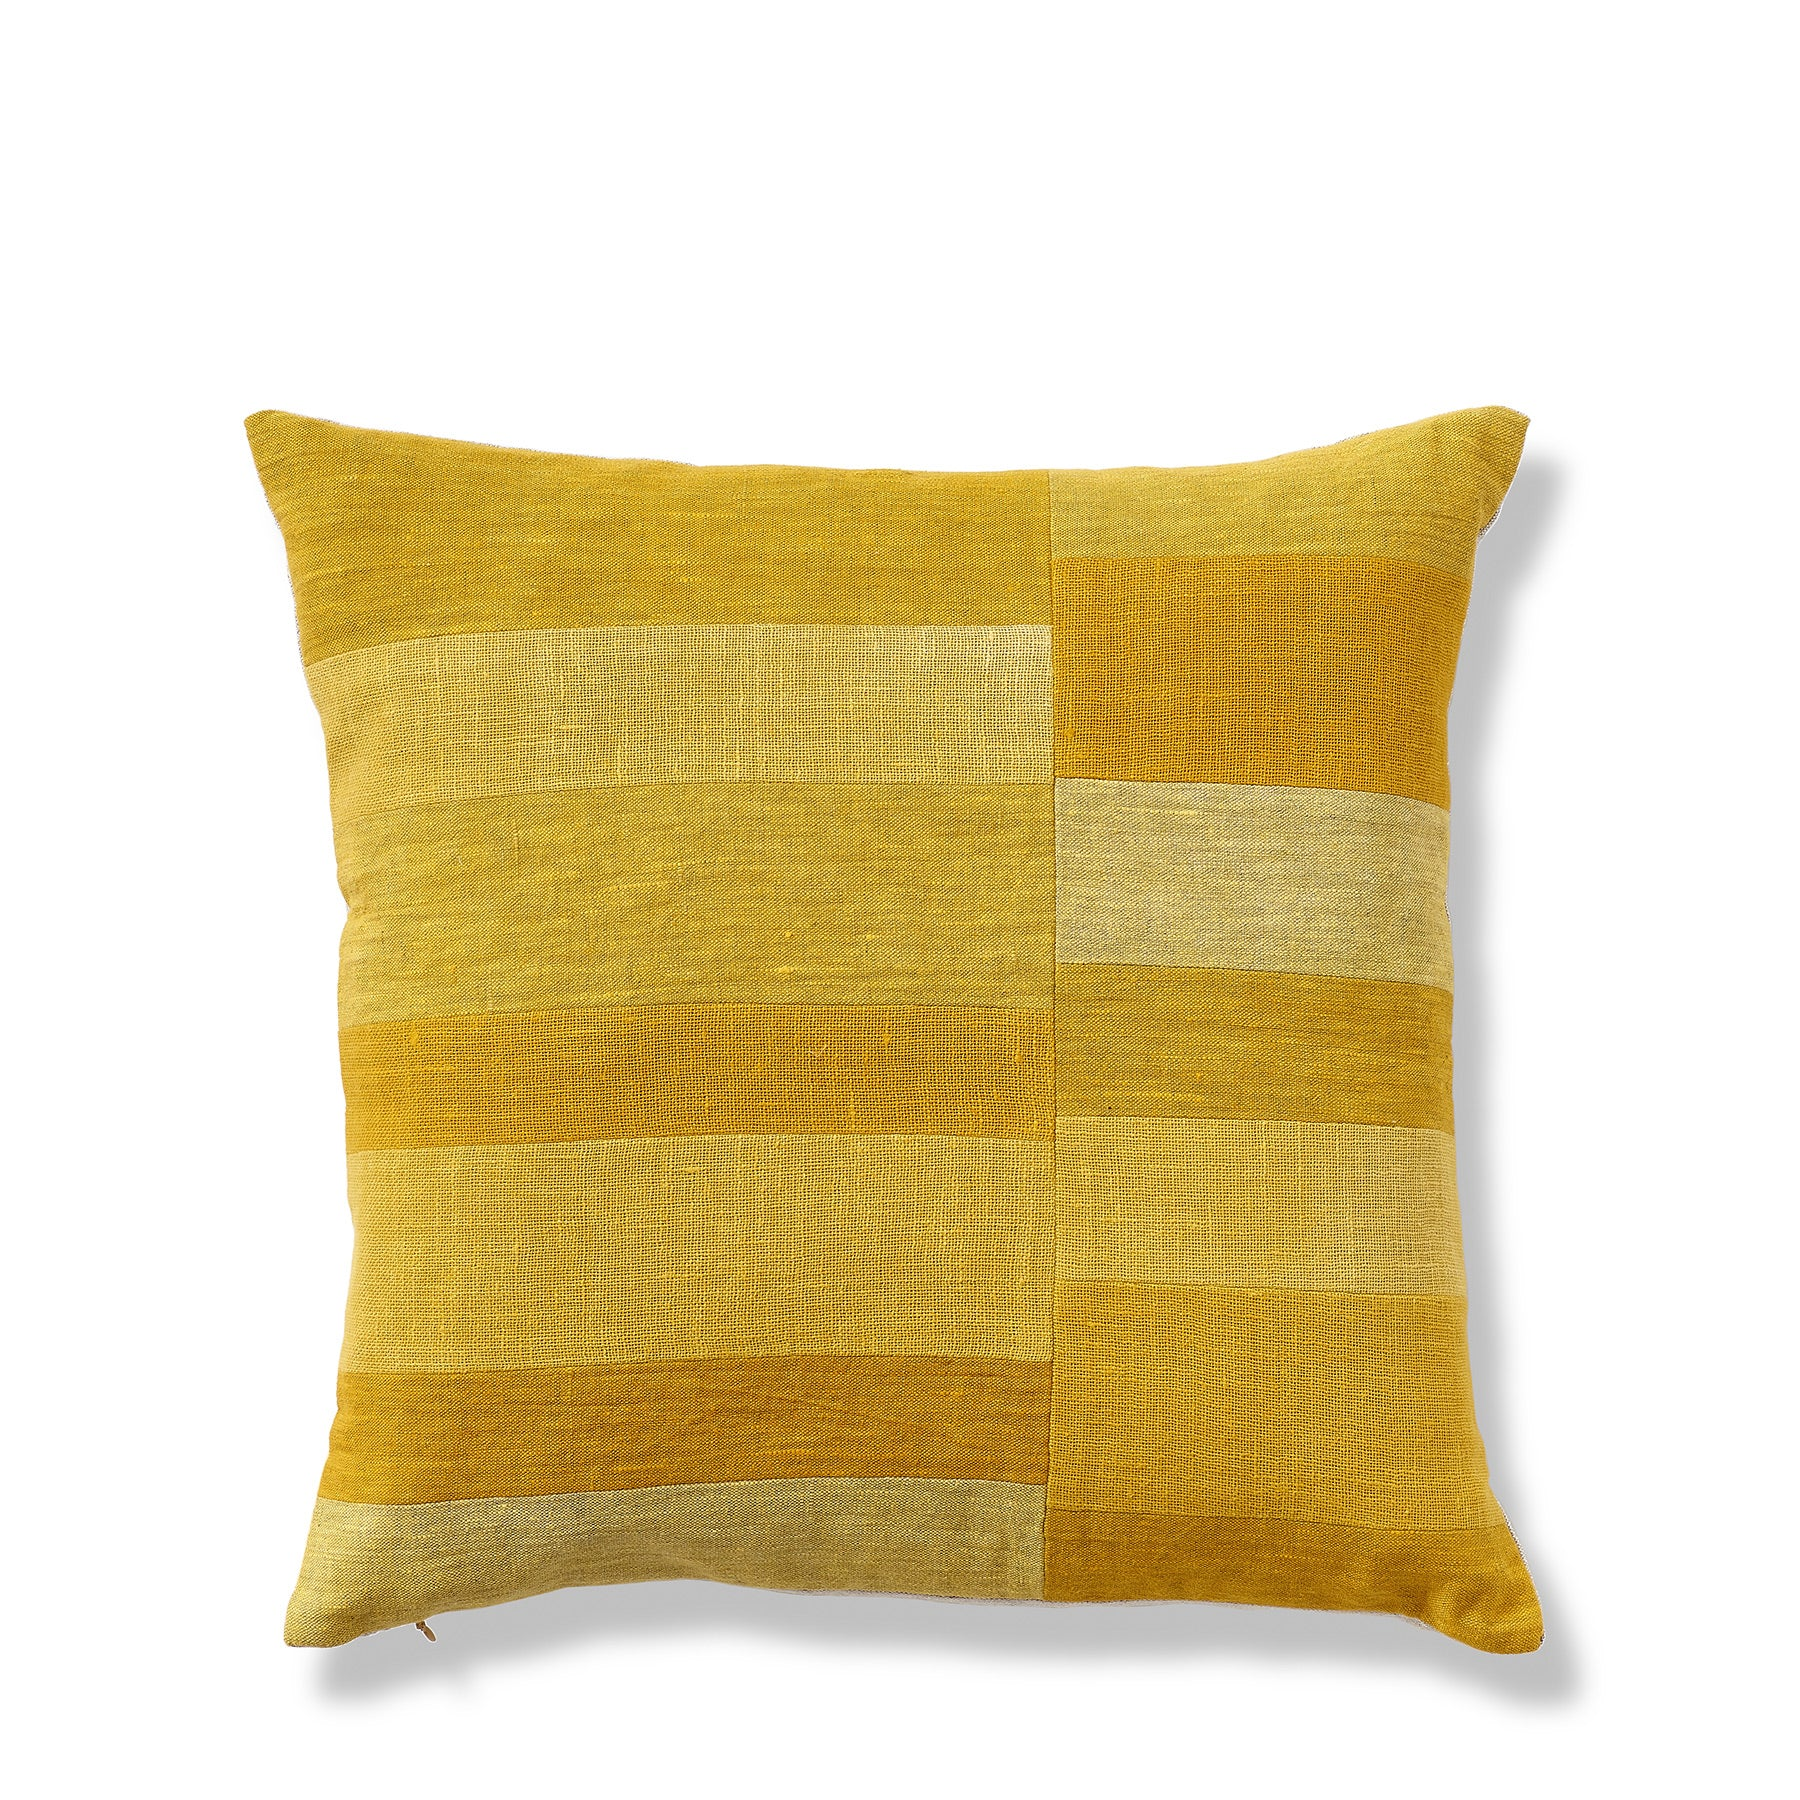 Split Stripe Patchwork Pillow in Yellow Zoom Image 1